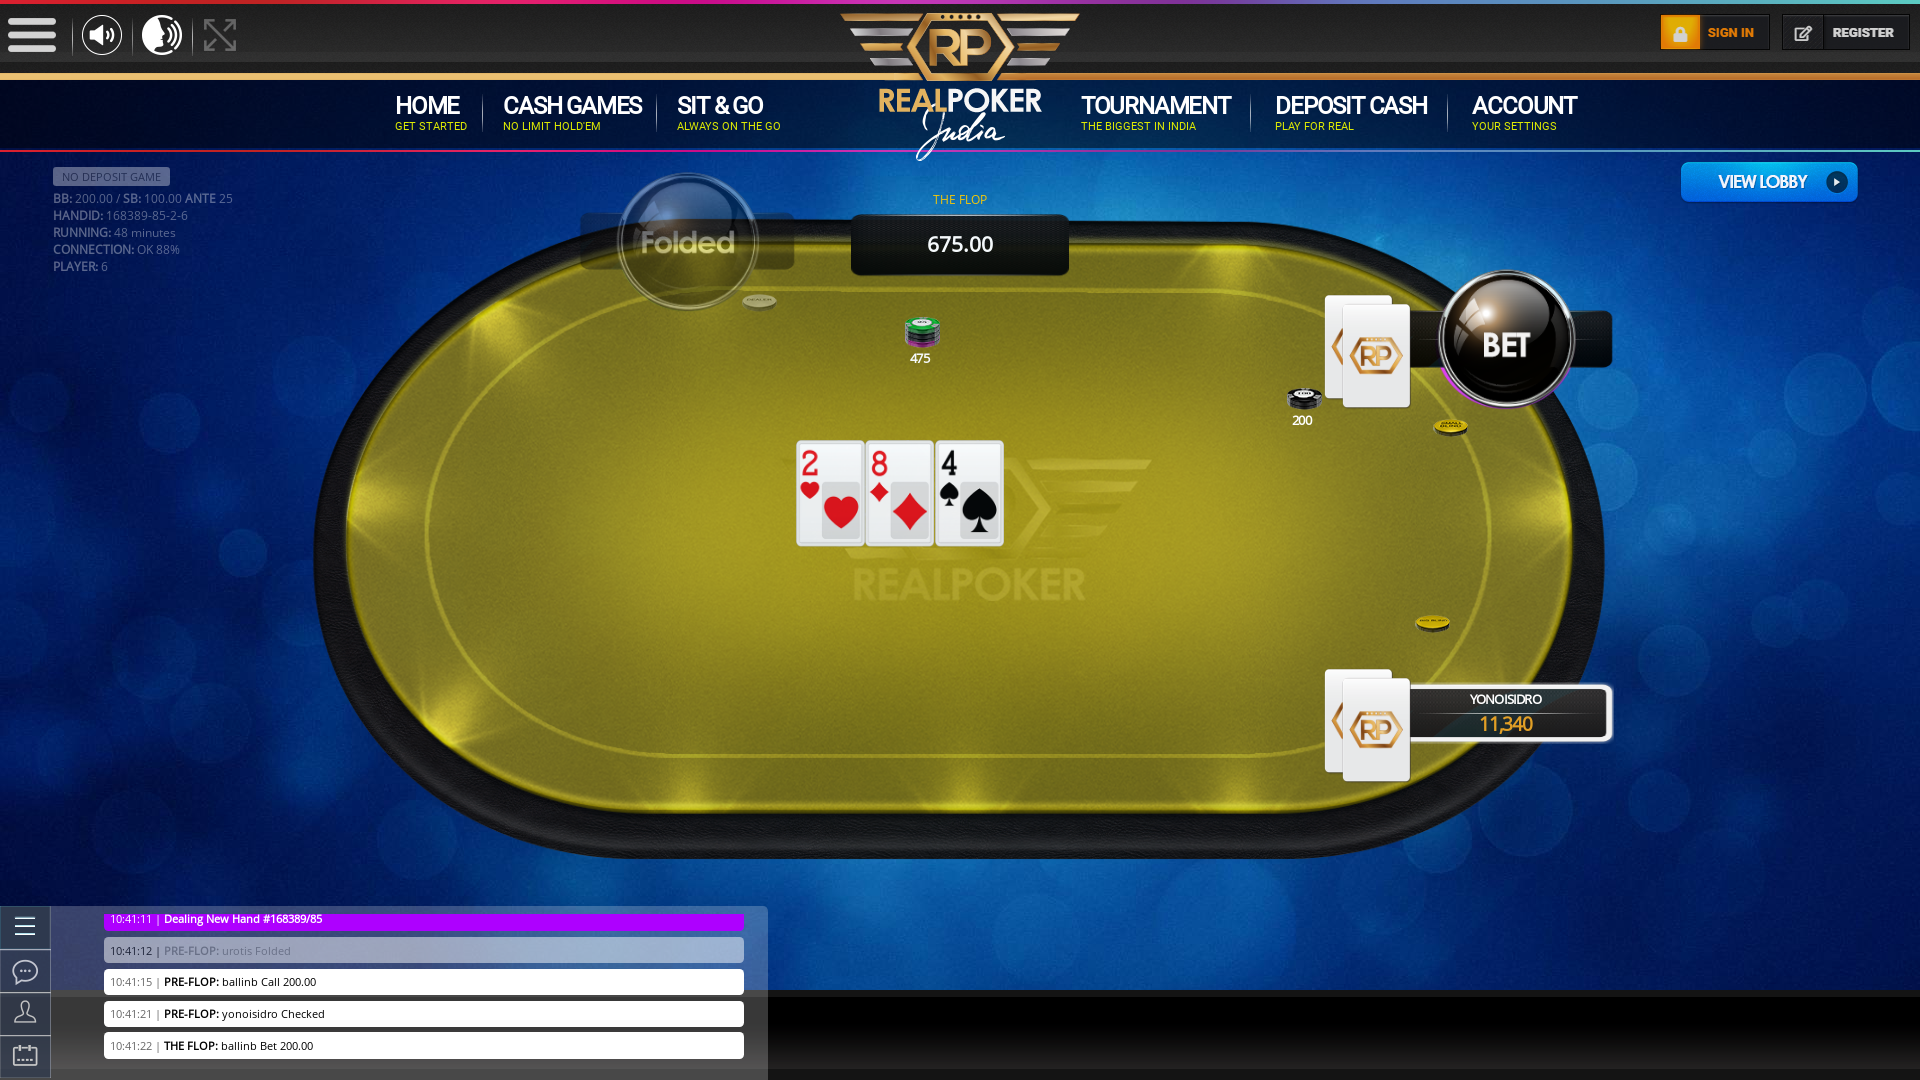 Indian poker on a 10 player table in the 48th minute